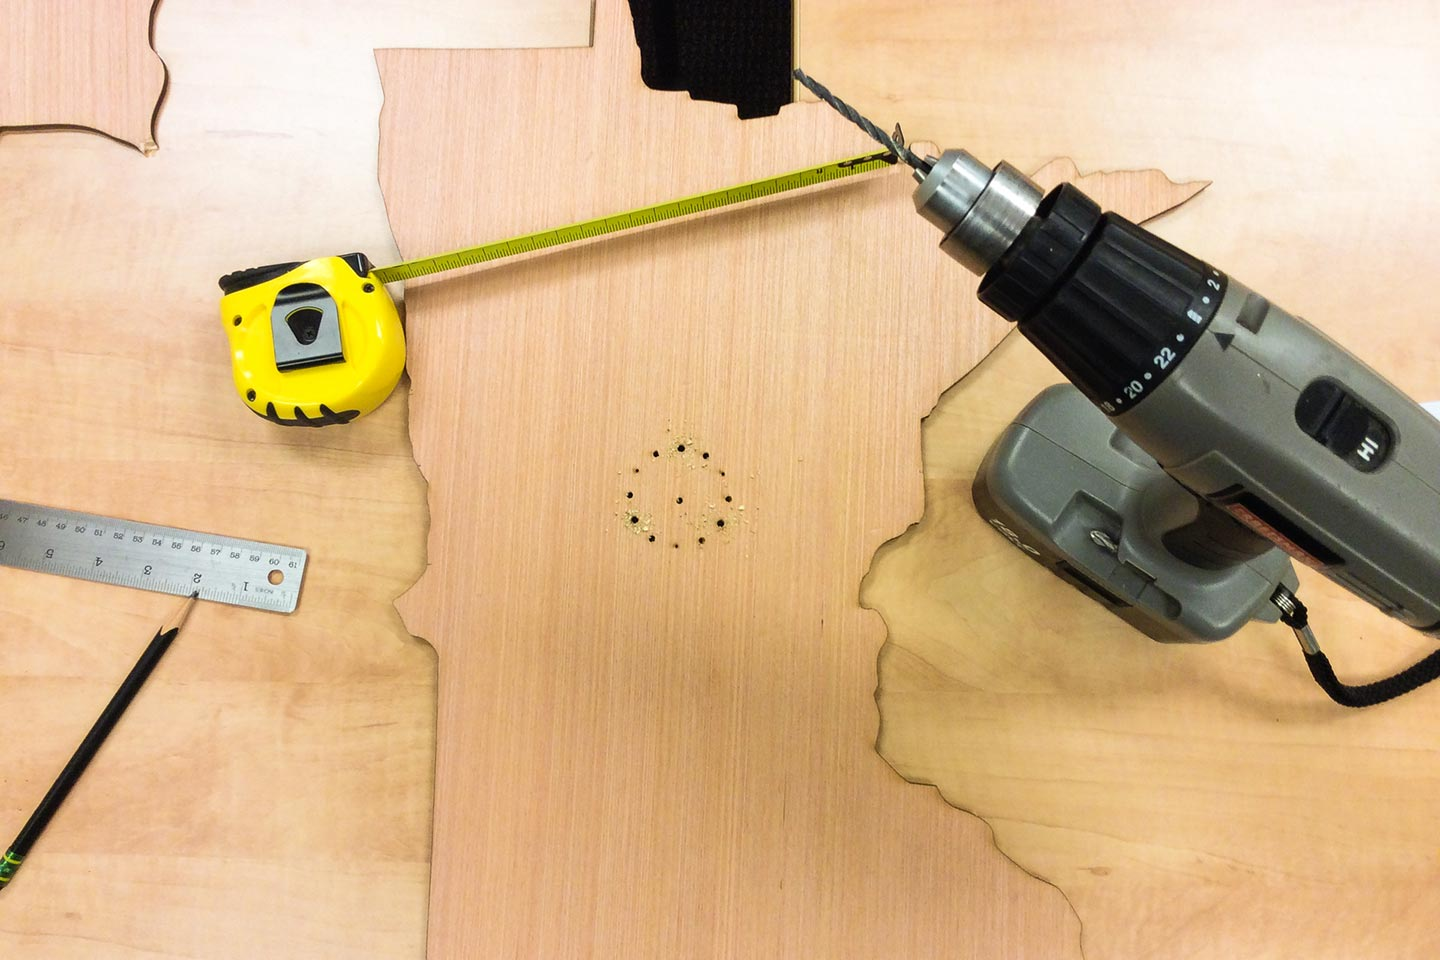 Drill, tape measure, and wood in the shape of Minnesota